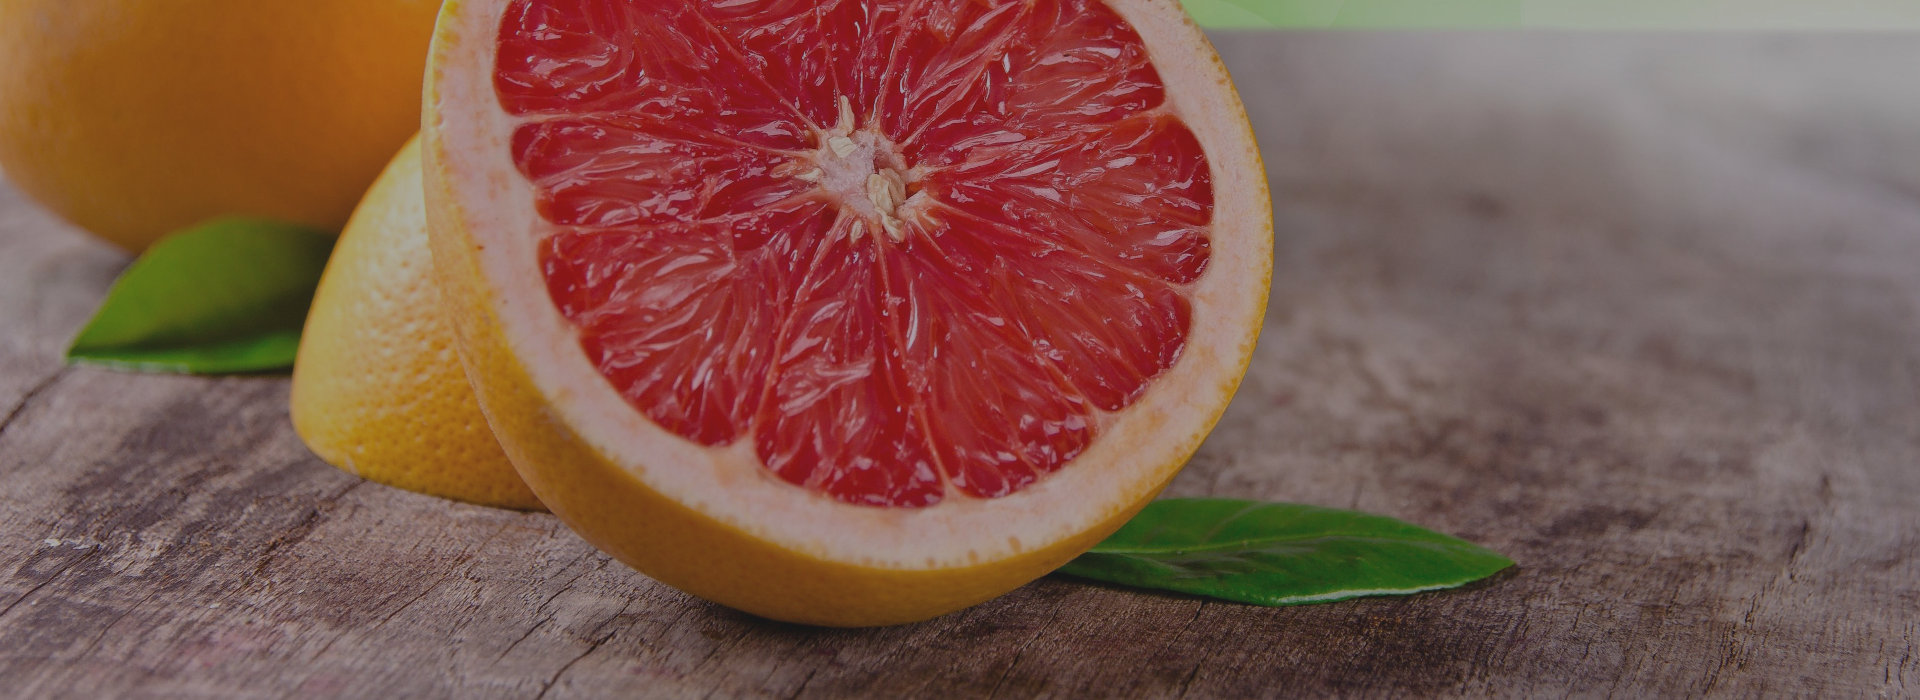 3-grapefruit